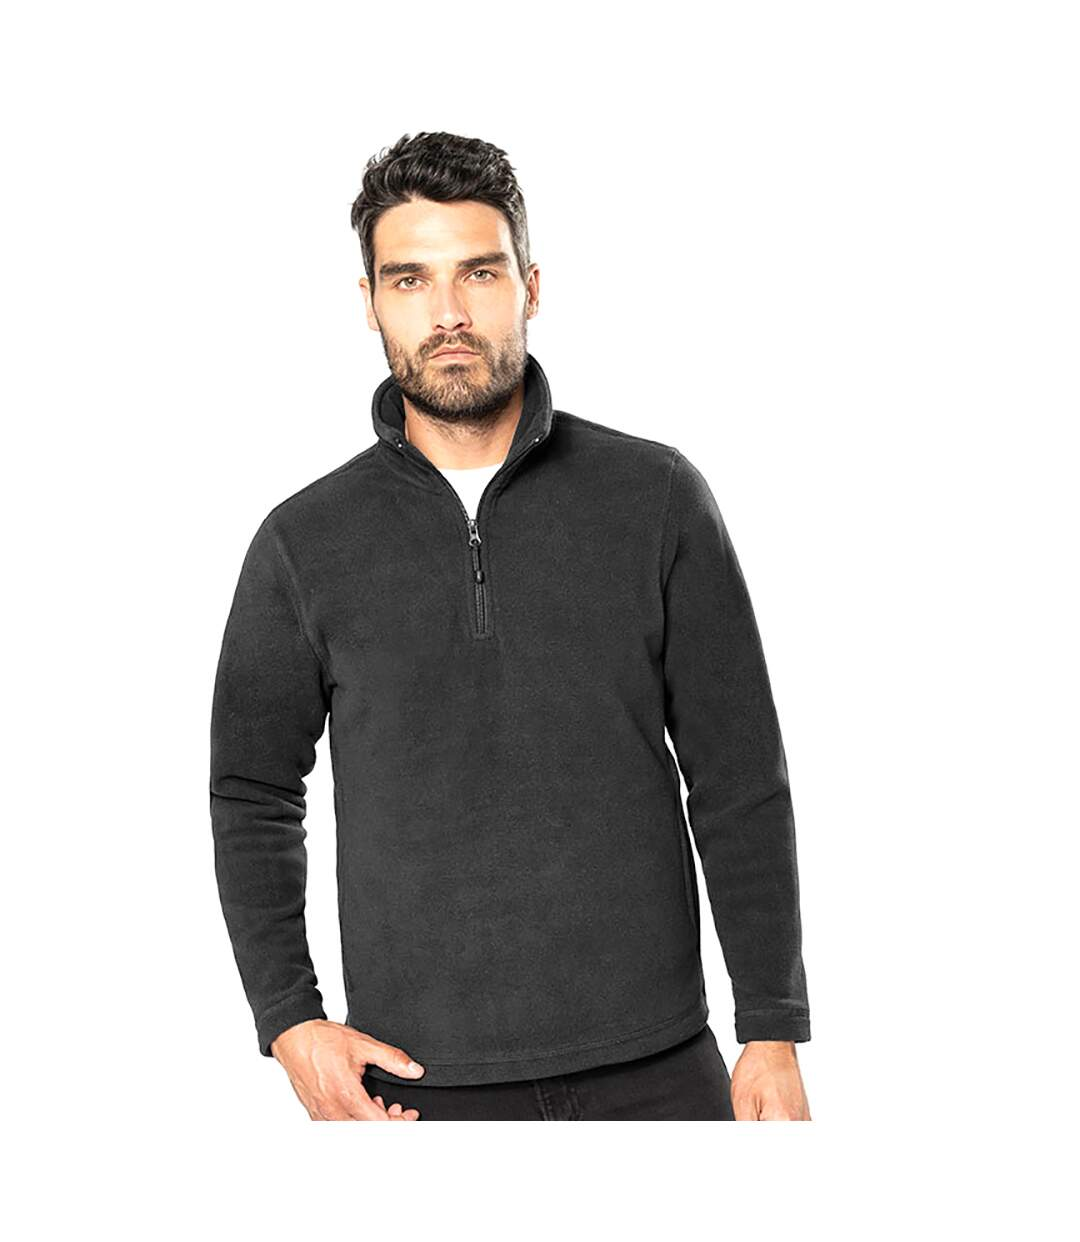 Kariban Mens Enzo 1/4 Zip Fleece Top (Dark Grey) - UTRW738